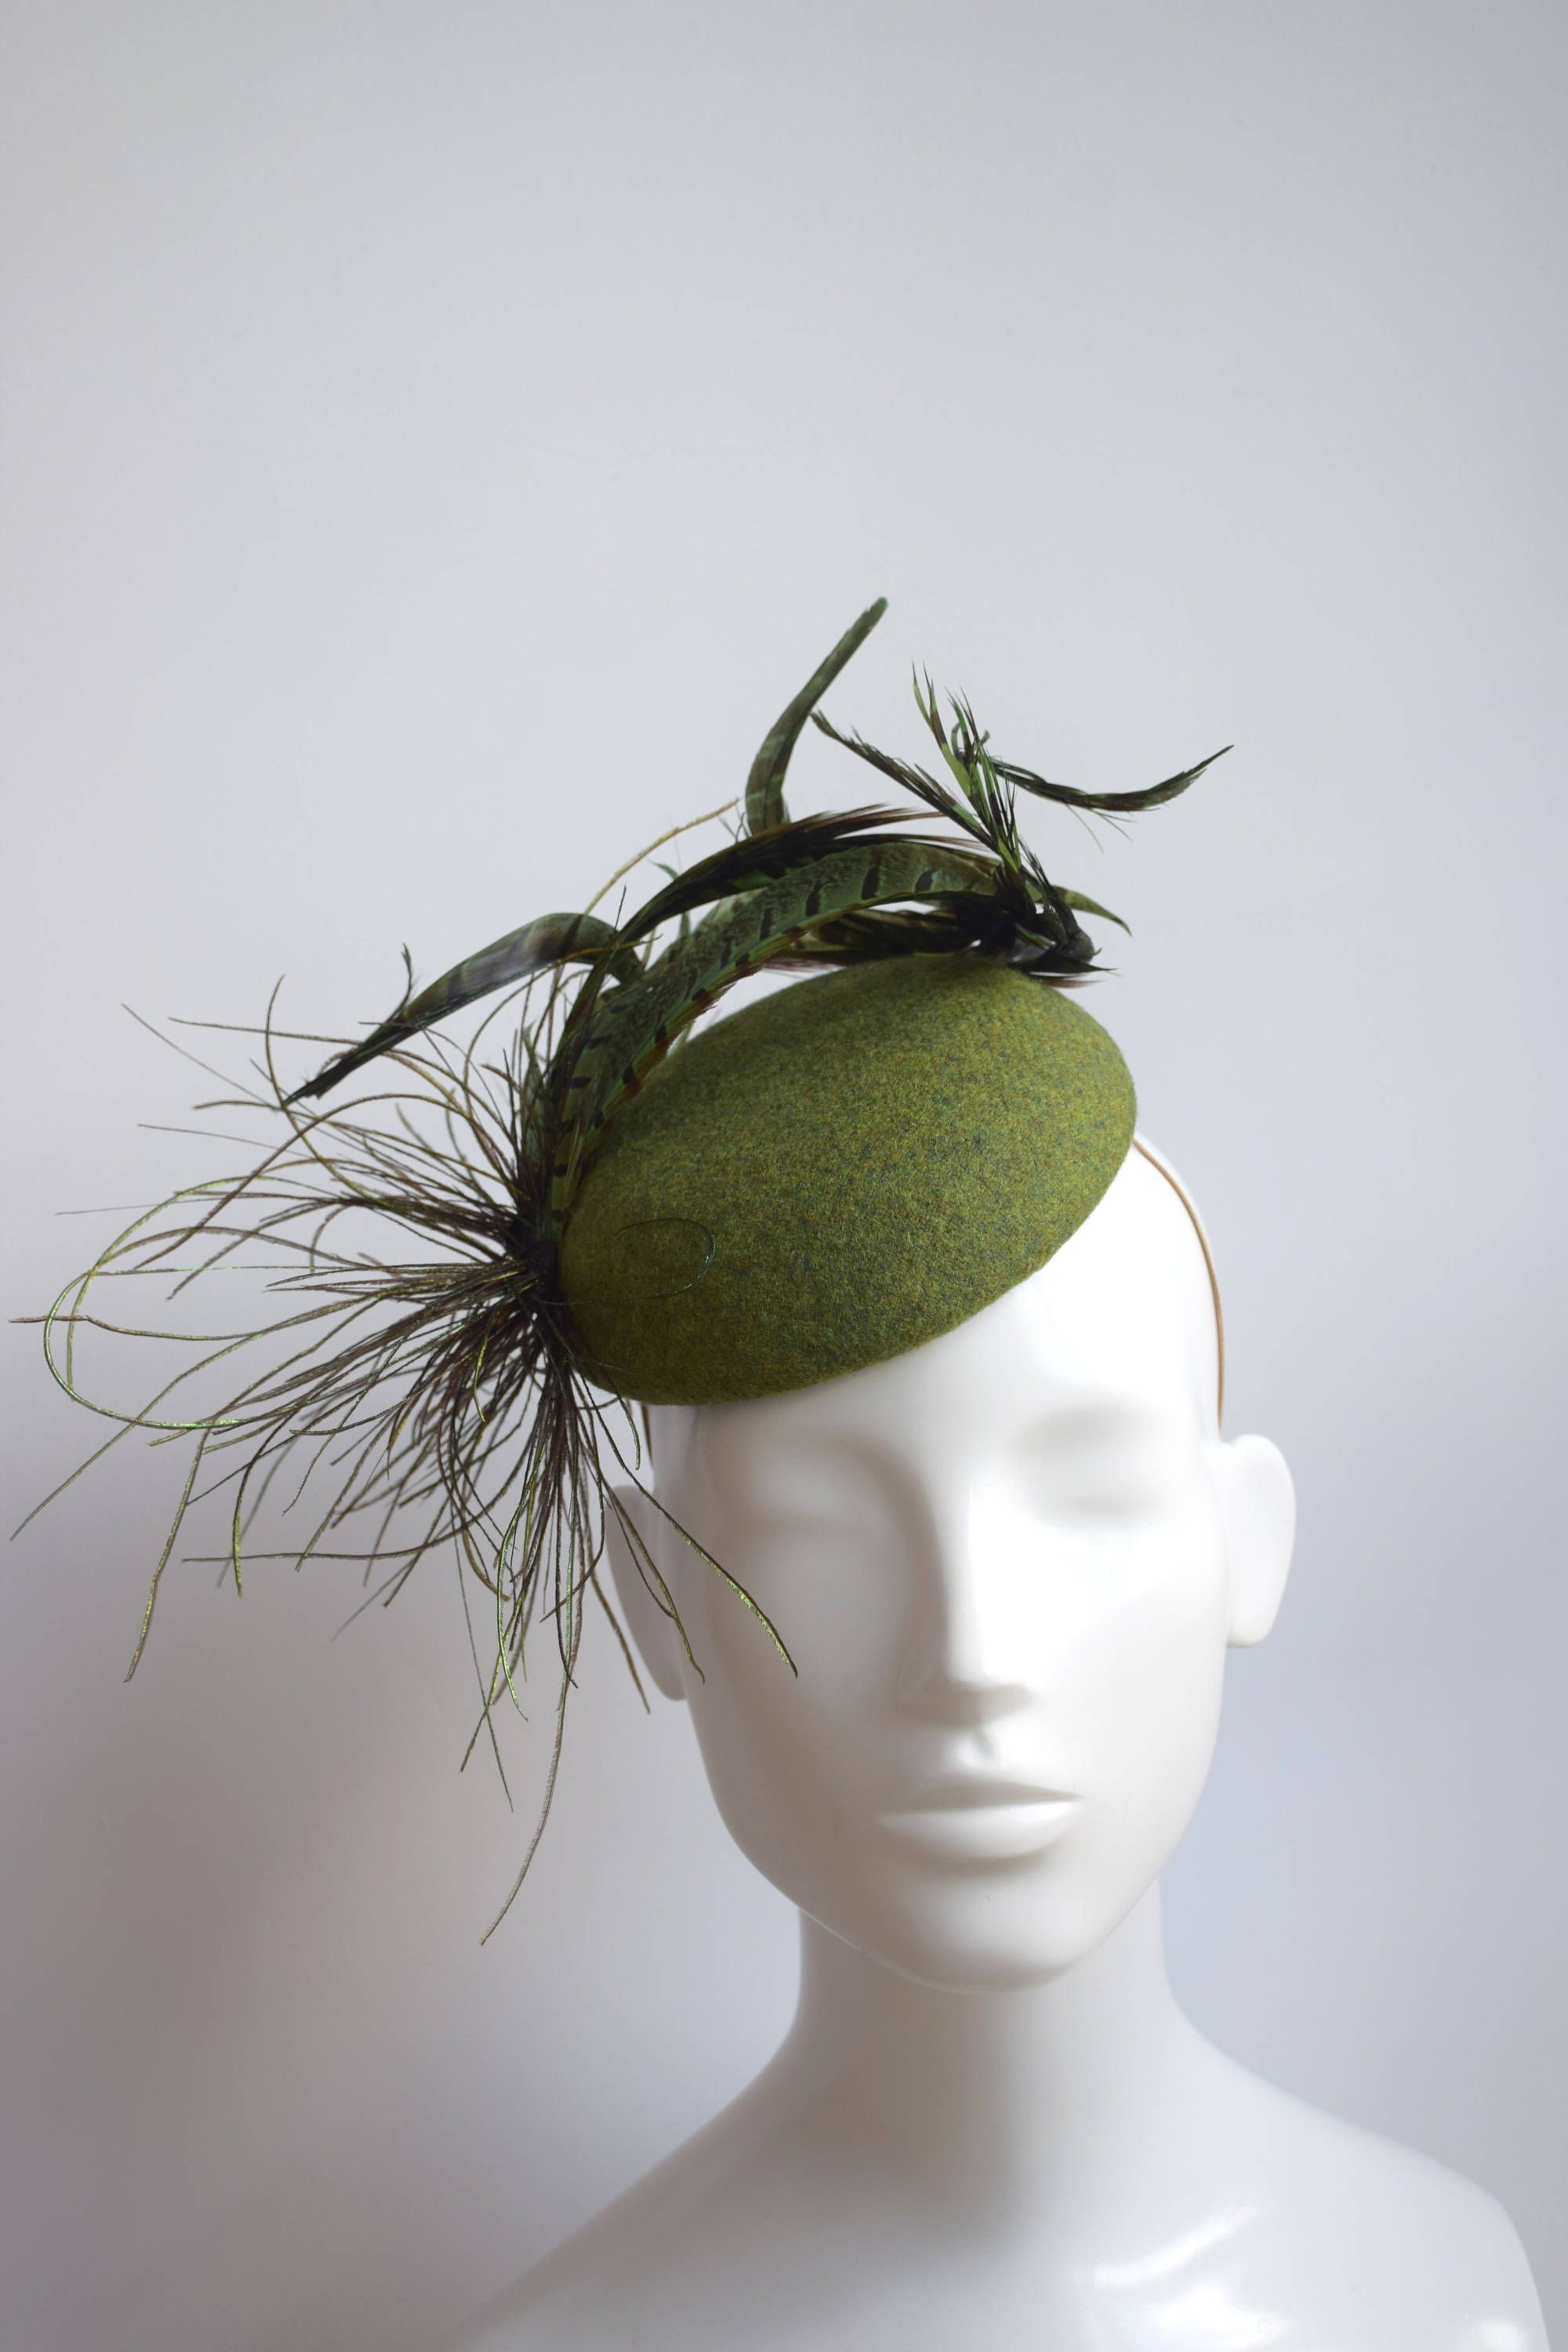 Green Fascinator - Green Harris Tweed - Wool Cocktail Hat - Winter Wedding  Hat - Cheltenham Races Hat - Green Pillbox Hat - Pheasant Feather by ... b49912d052d